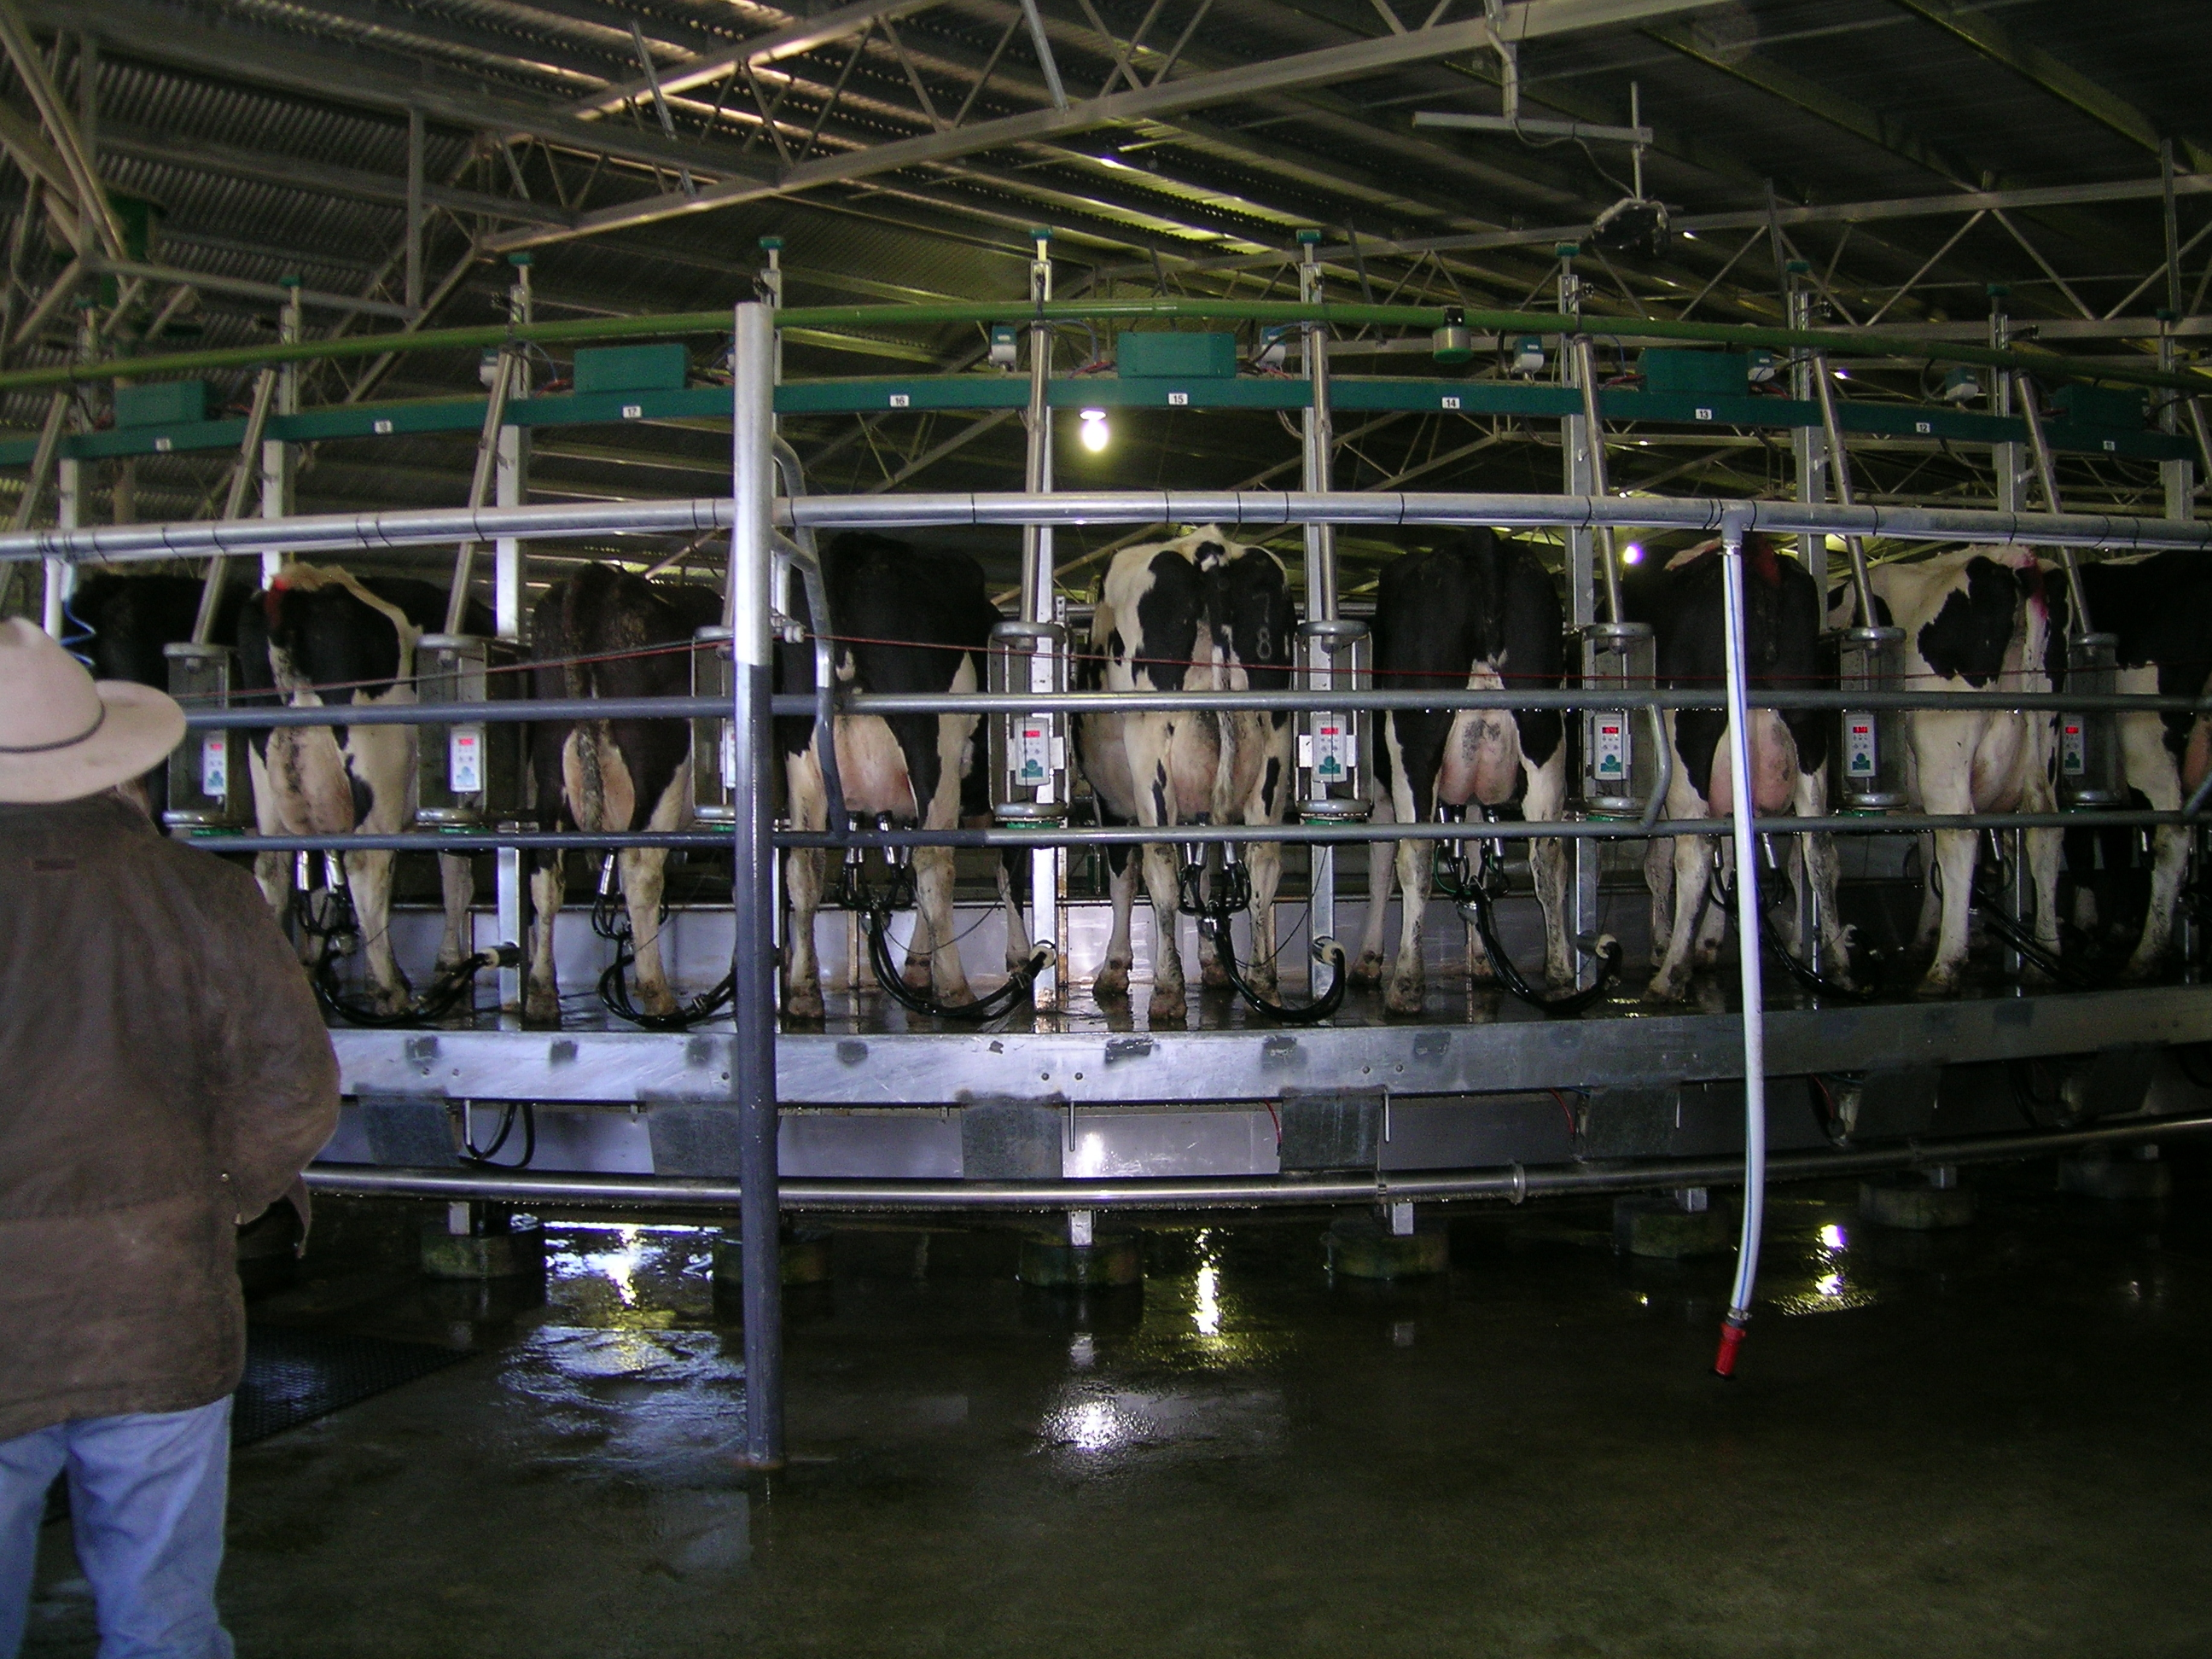 https://upload.wikimedia.org/wikipedia/commons/f/ff/Dairy_NSW.JPG